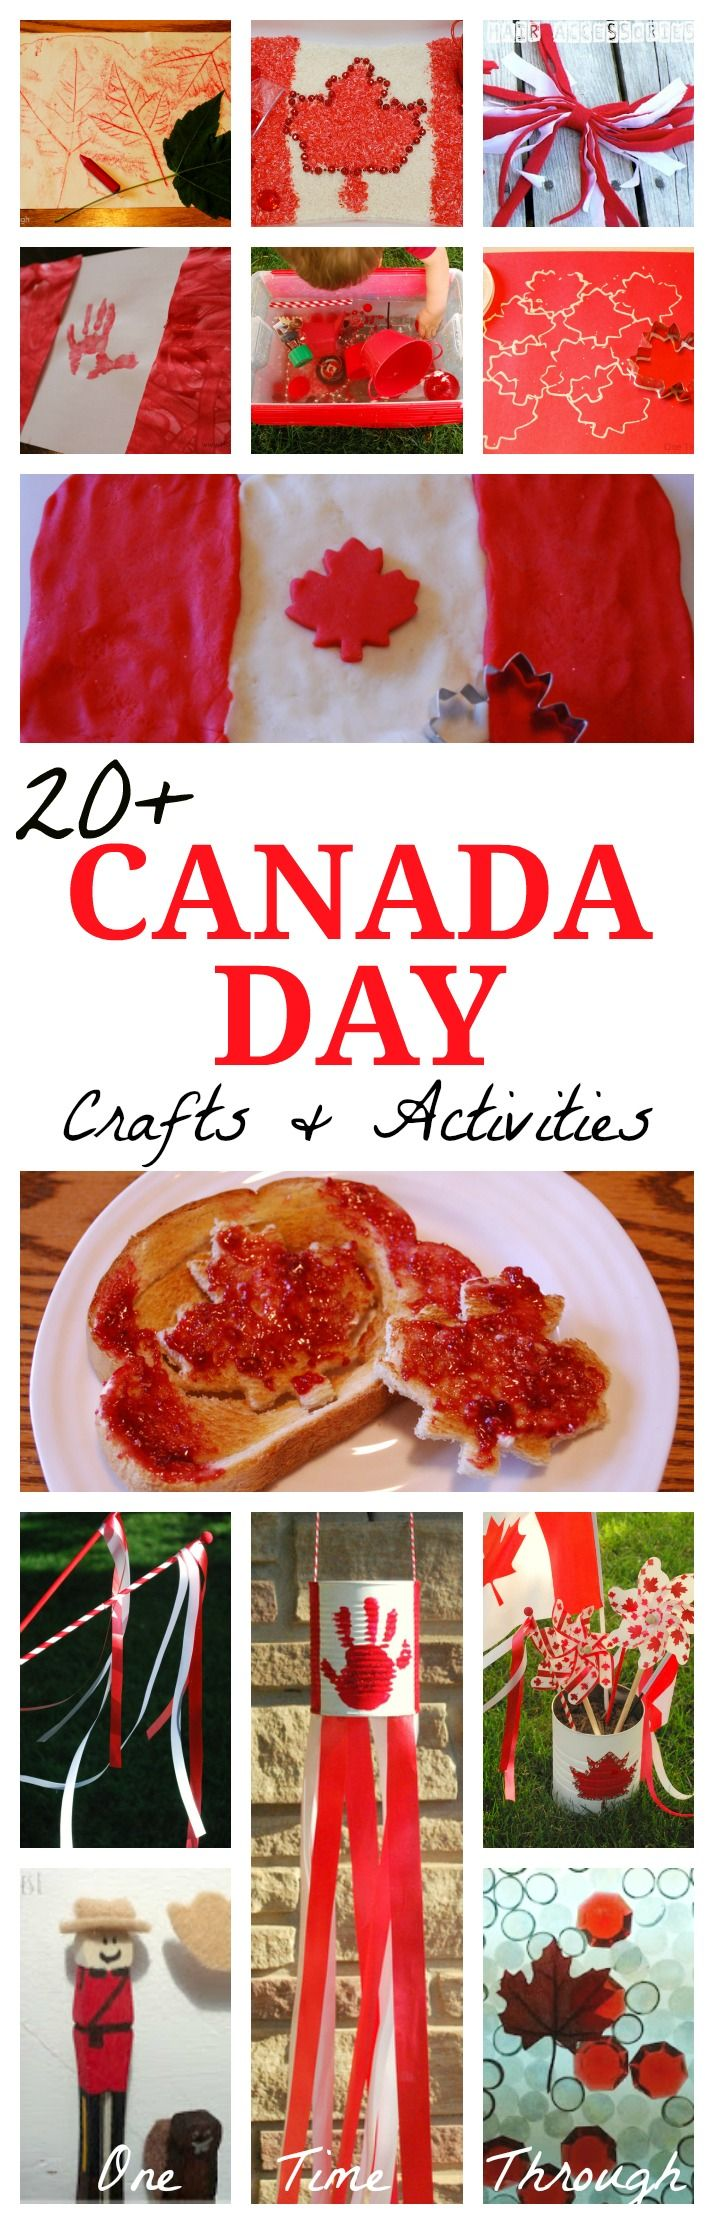 Canada Day - 20+ Crafts & Activities